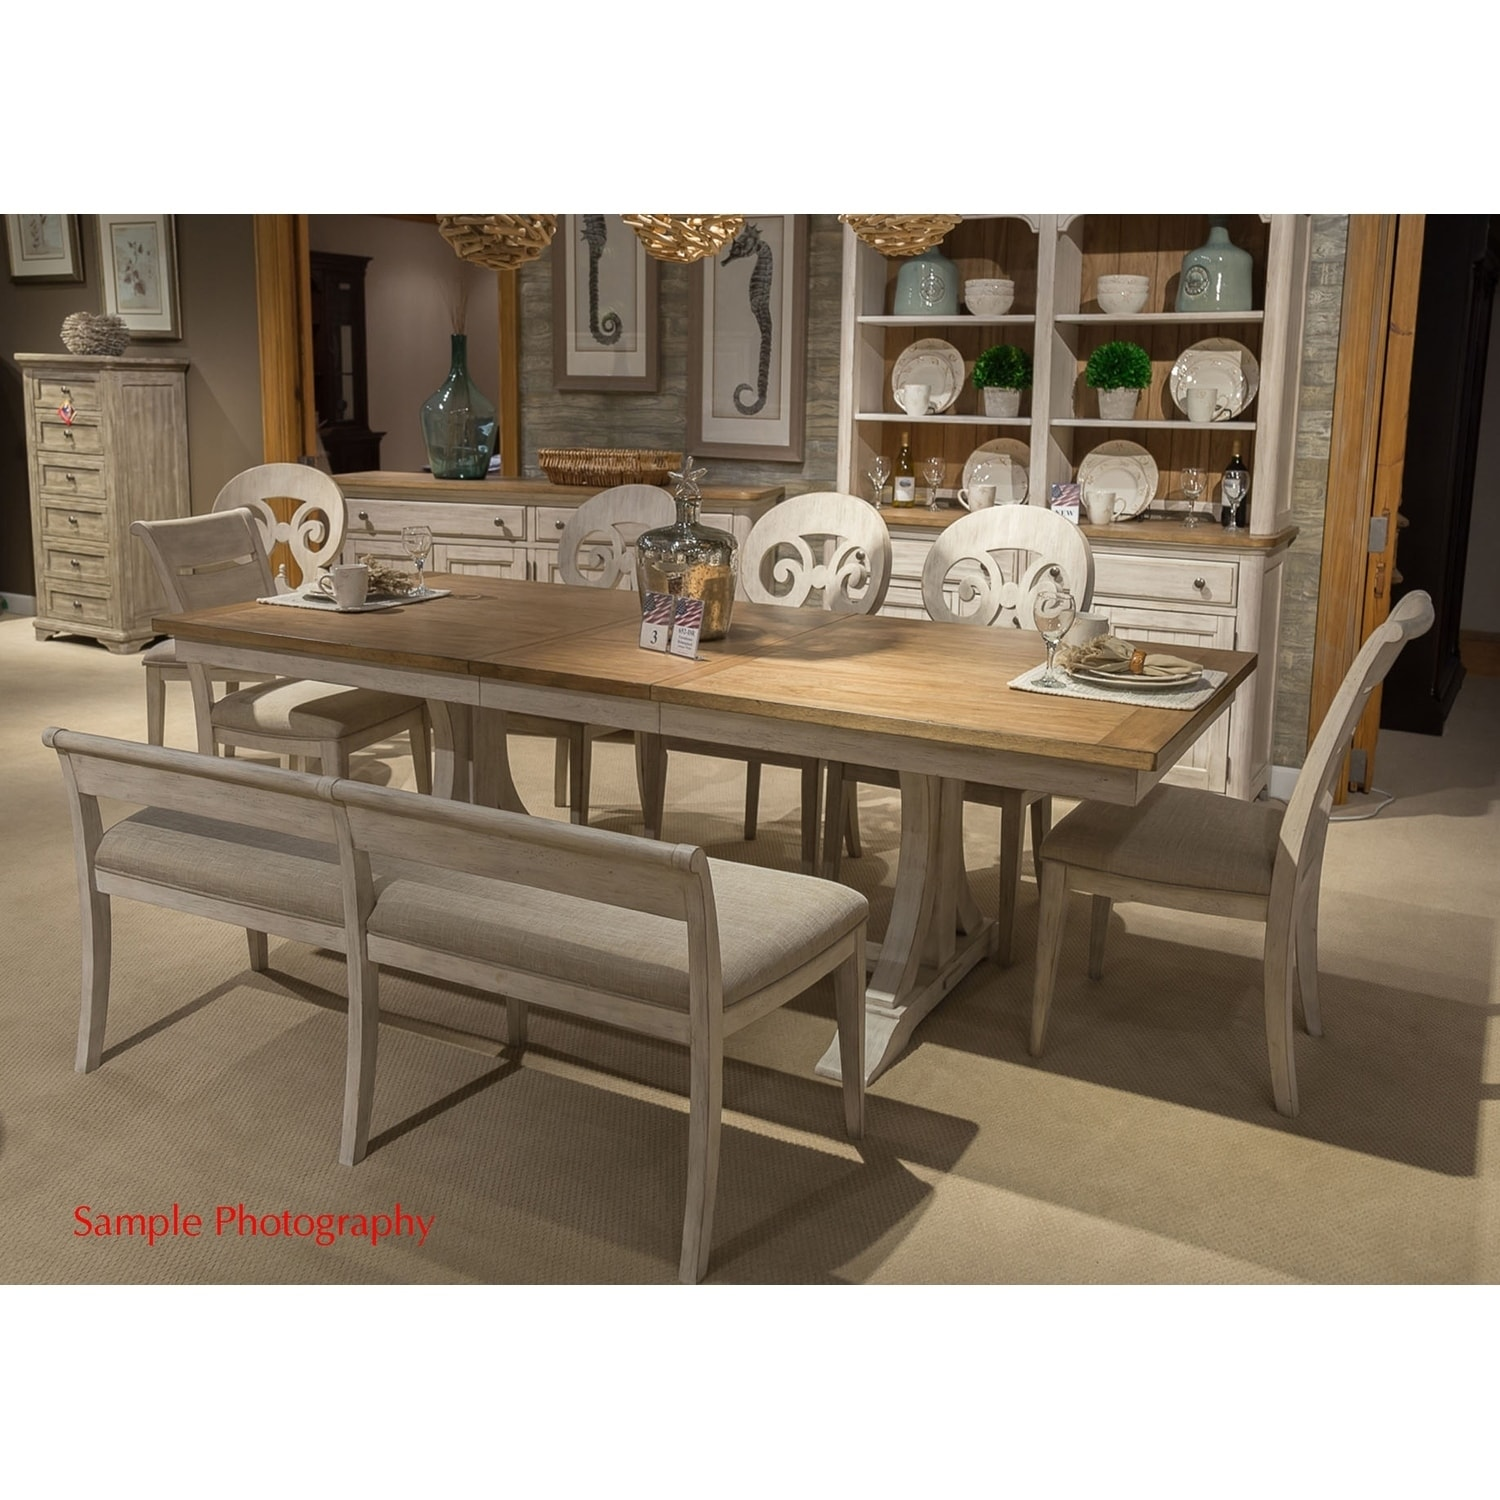 Shop Farmhouse Antique Two Toned Opt 7 Piece Trestle Table Dining Set   On  Sale   Free Shipping Today   Overstock.com   18620095